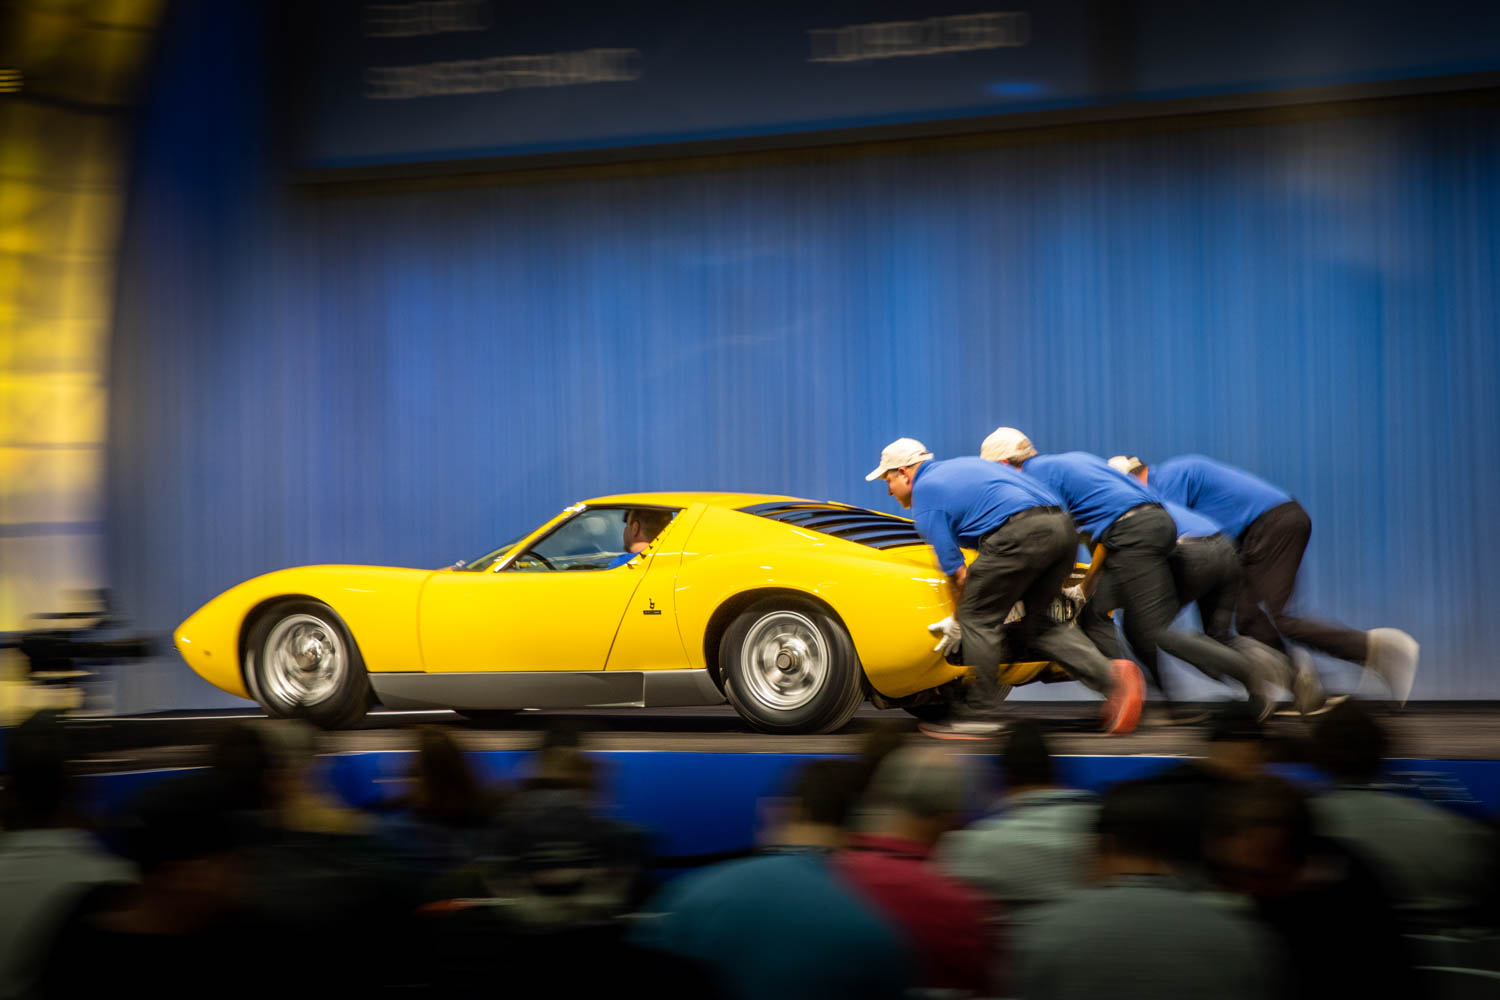 1969 Lamborghini Muira pushed off stage